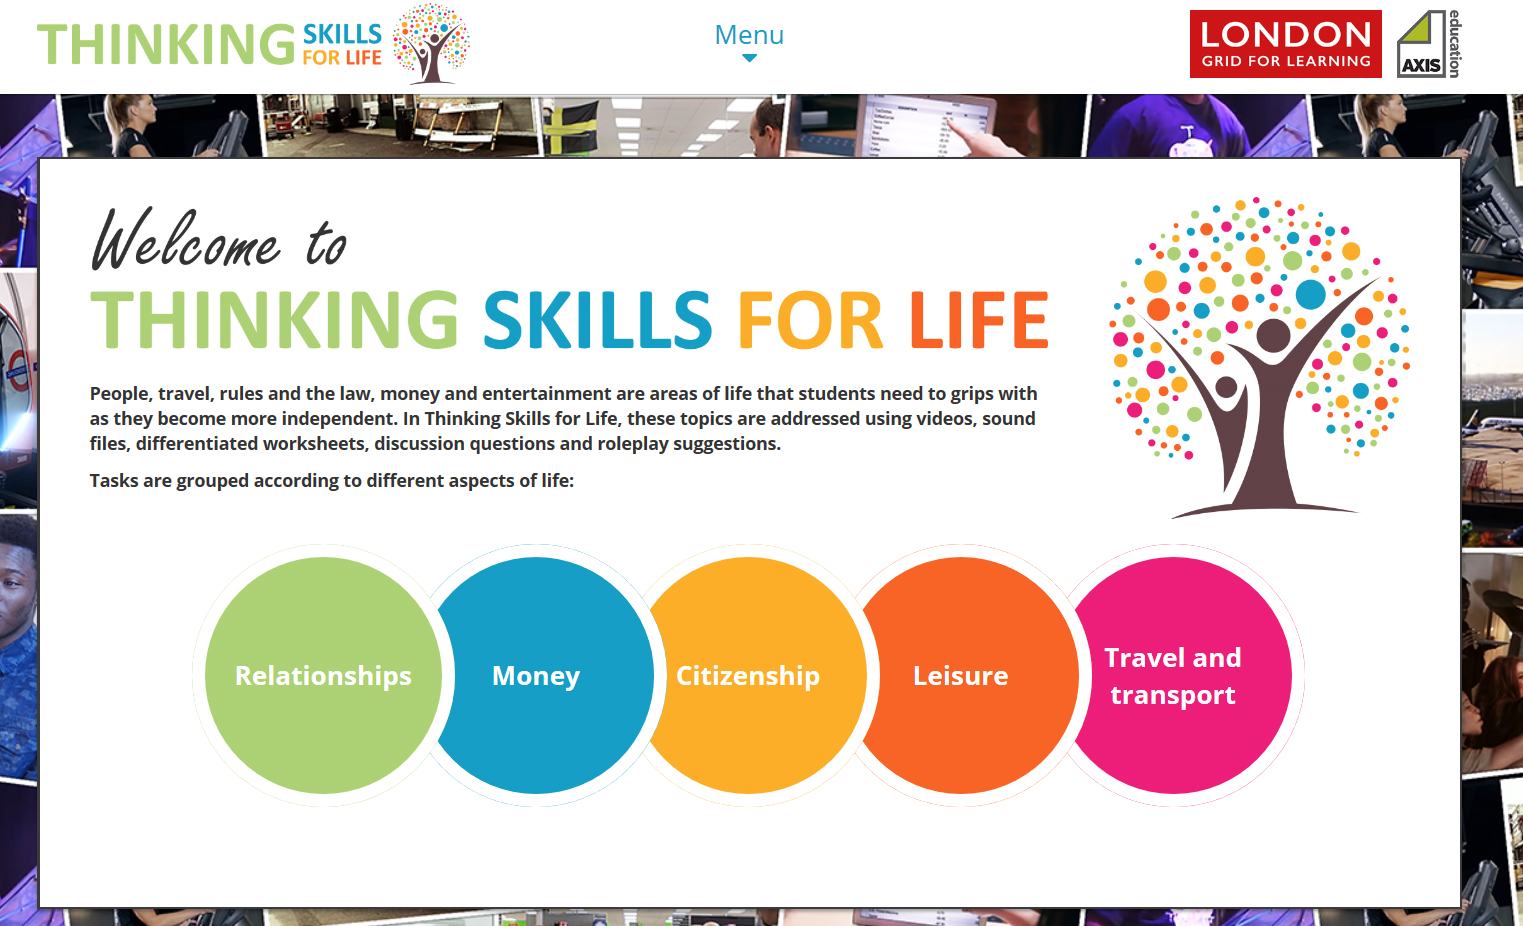 Thinking Skills for Life - London Grid for Learning